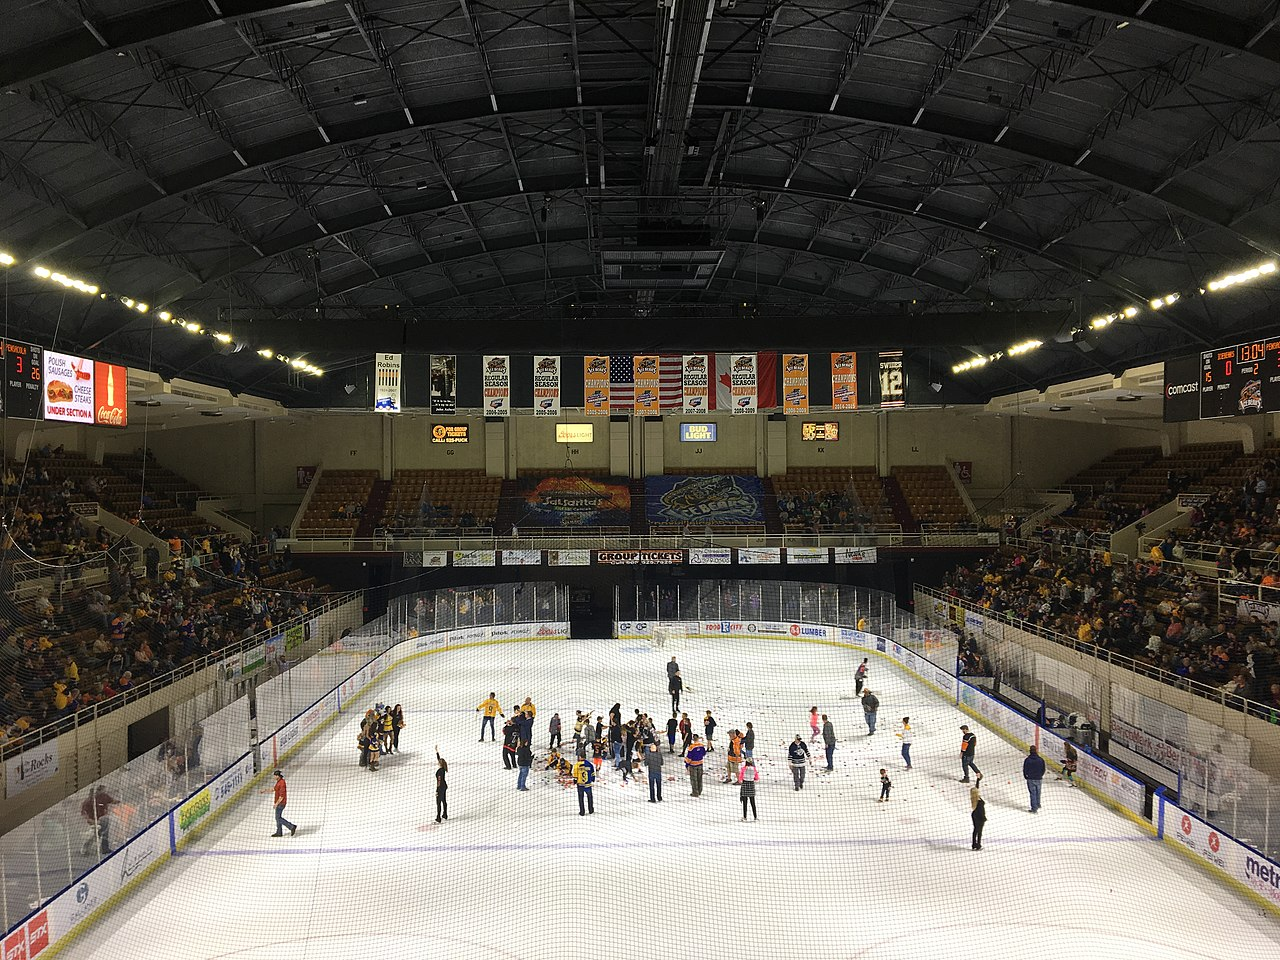 1280px-Knoxville_Civic_Coliseum.jpg